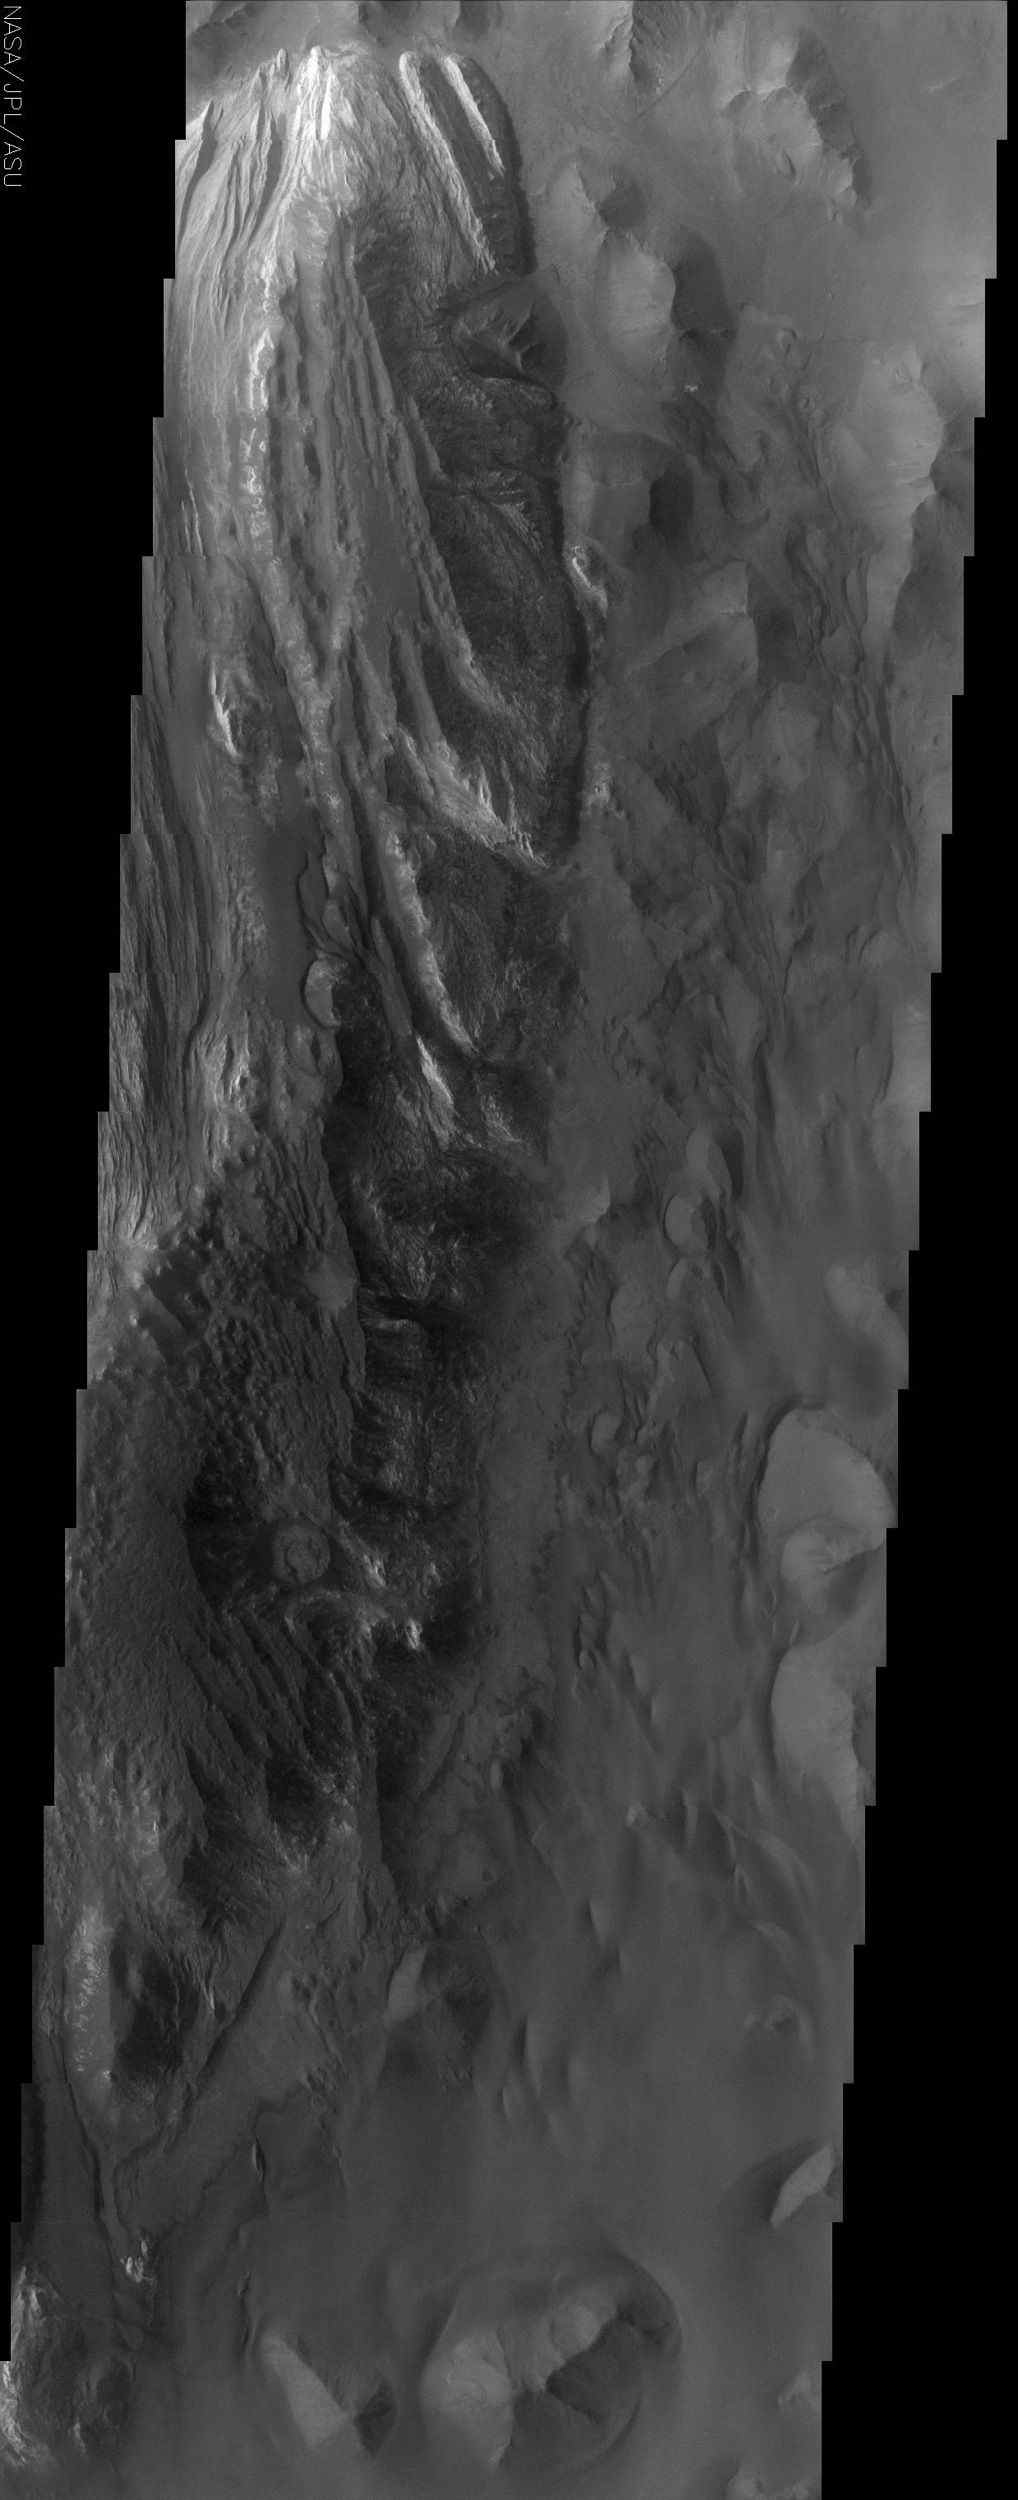 Juventae Chasma is an enormous box canyon which opens to the north and forms the outflow channel Maja Vallis. This image from NASA's Mars Odyssey spacecraft captures a portion of the western floor of Juventae Chasma and shows a wide variety of landforms.